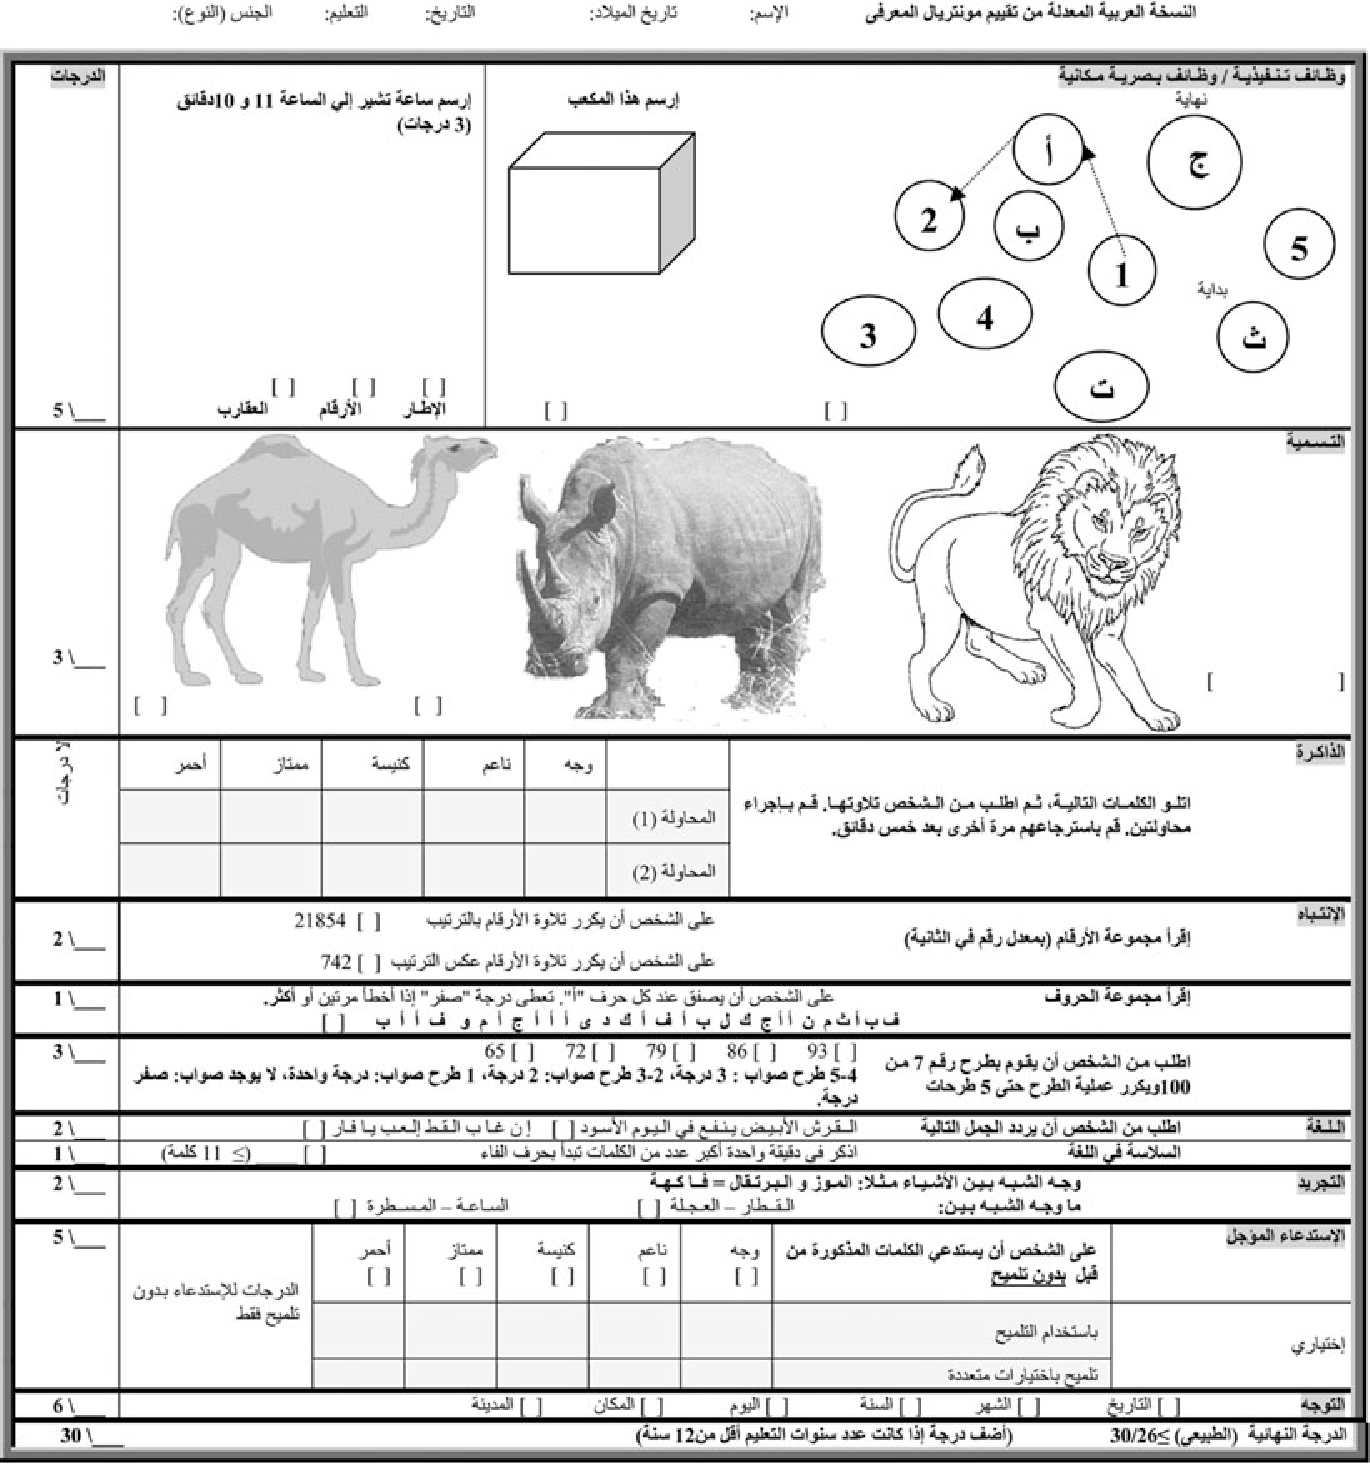 Montreal Cognitive Assessment Arabic Version Reliability And